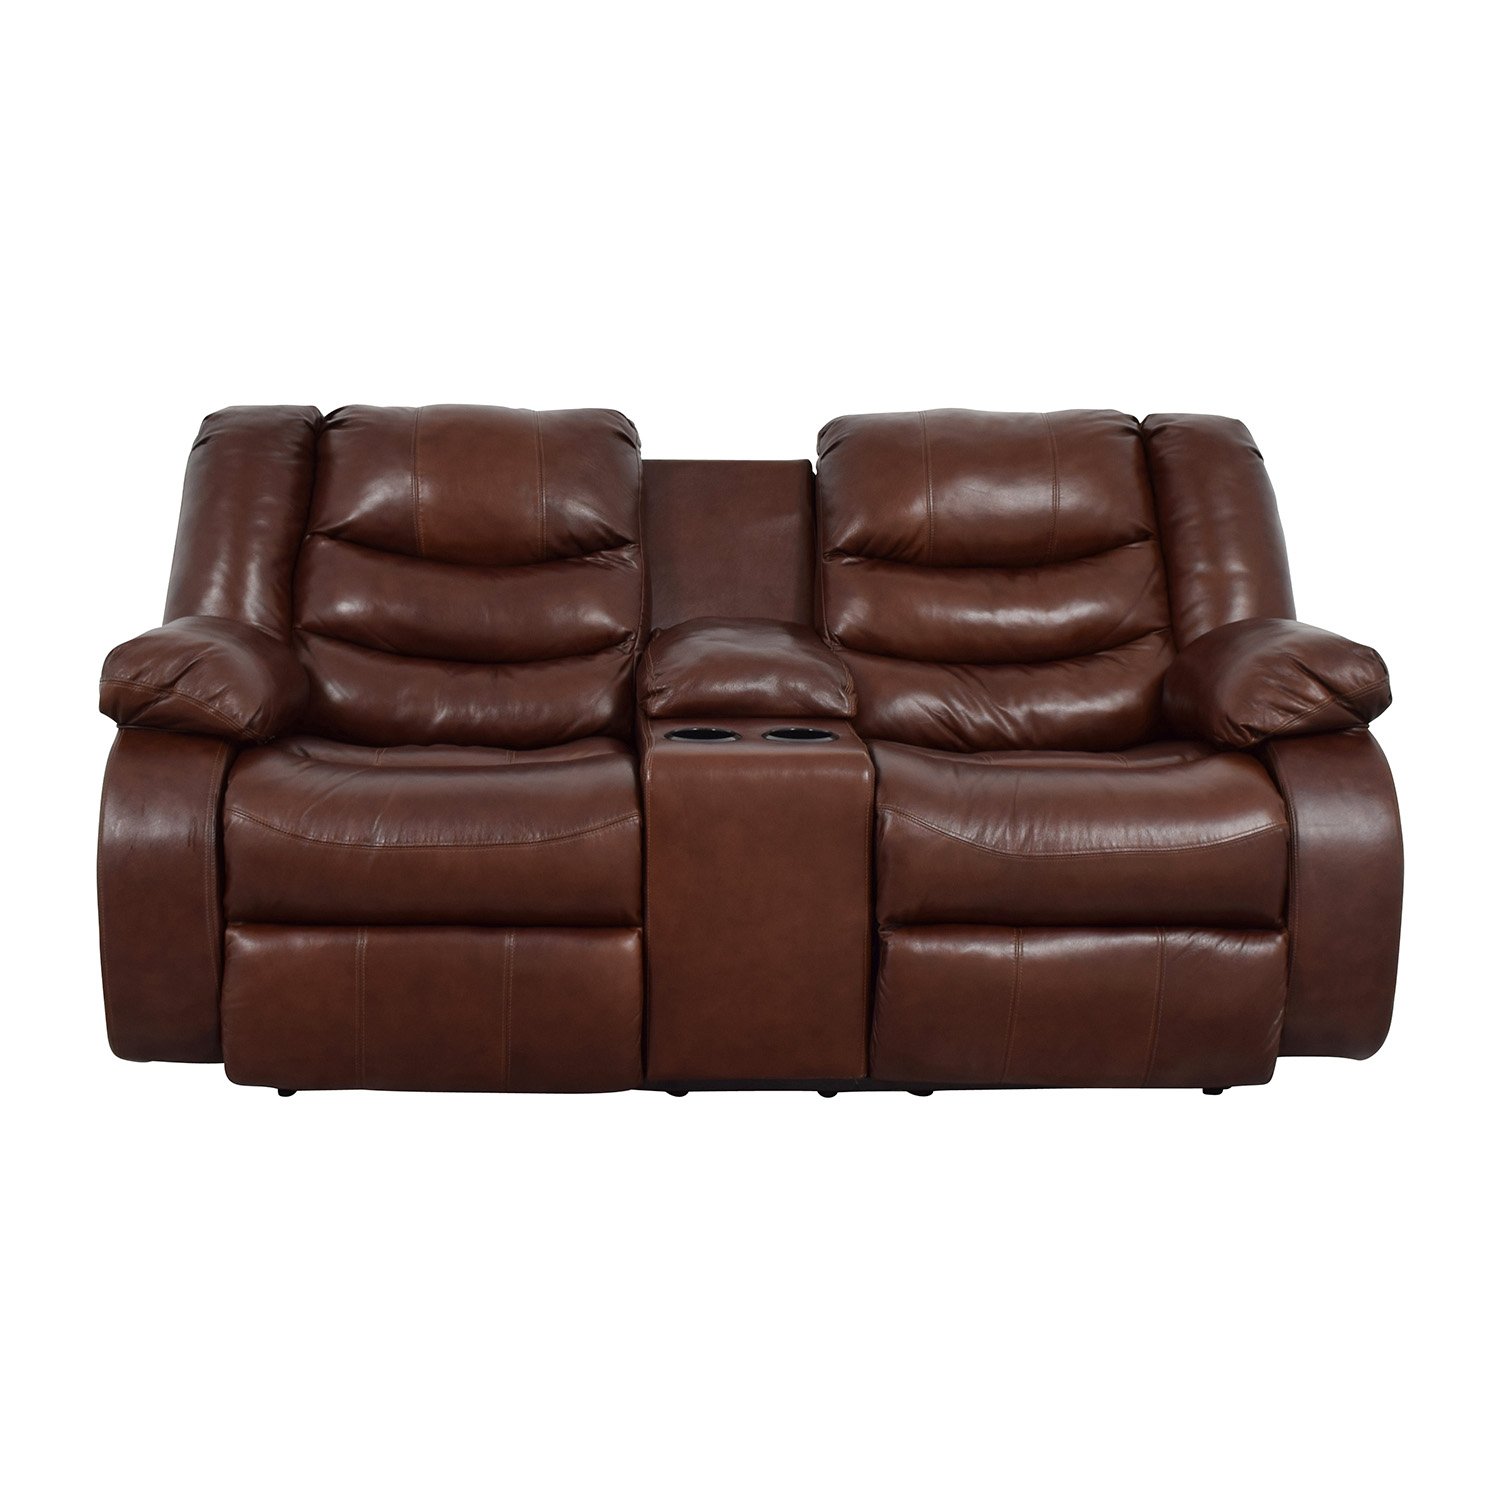 90 Off Ashley Furniture Ashley Furniture Brown Leather